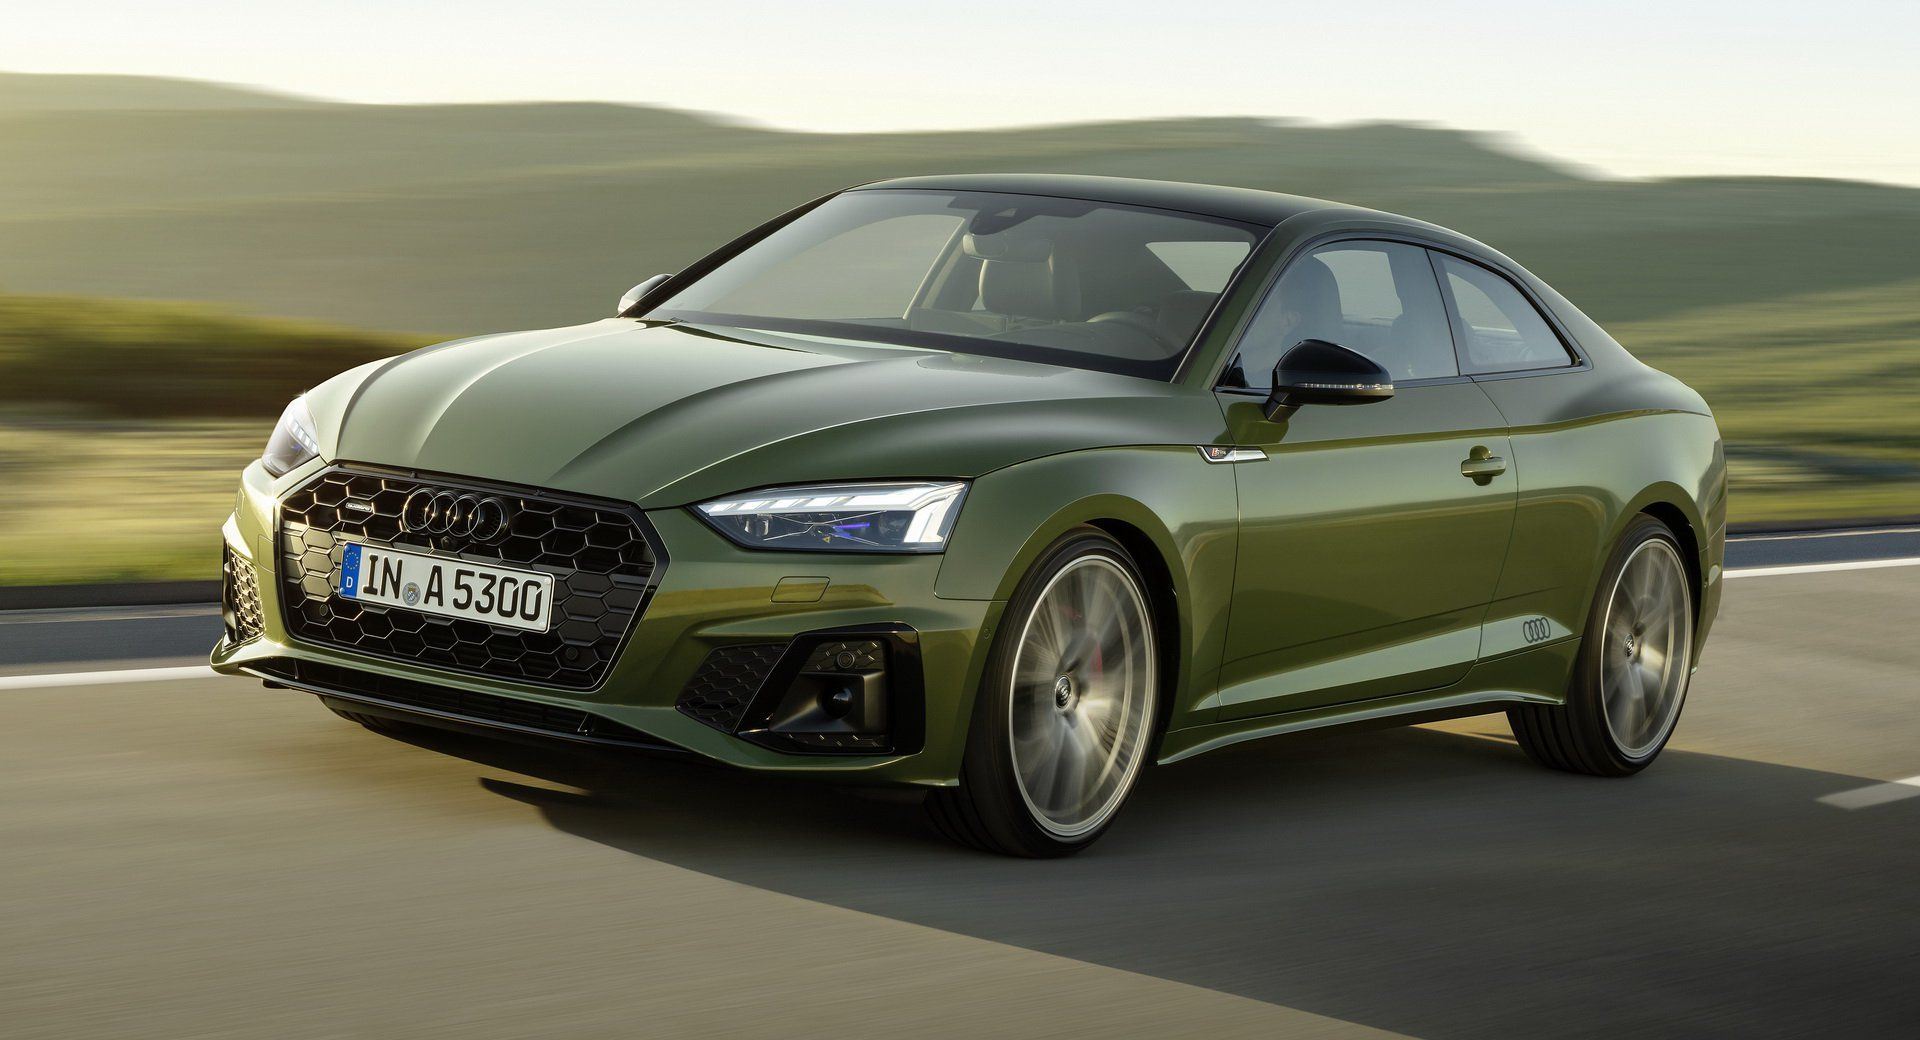 Audi Reveals Updated 2020 A5 Family Including Diesel Only S5 For Europe Audi A5 Audi A5 Coupe Audi S5 Sportback